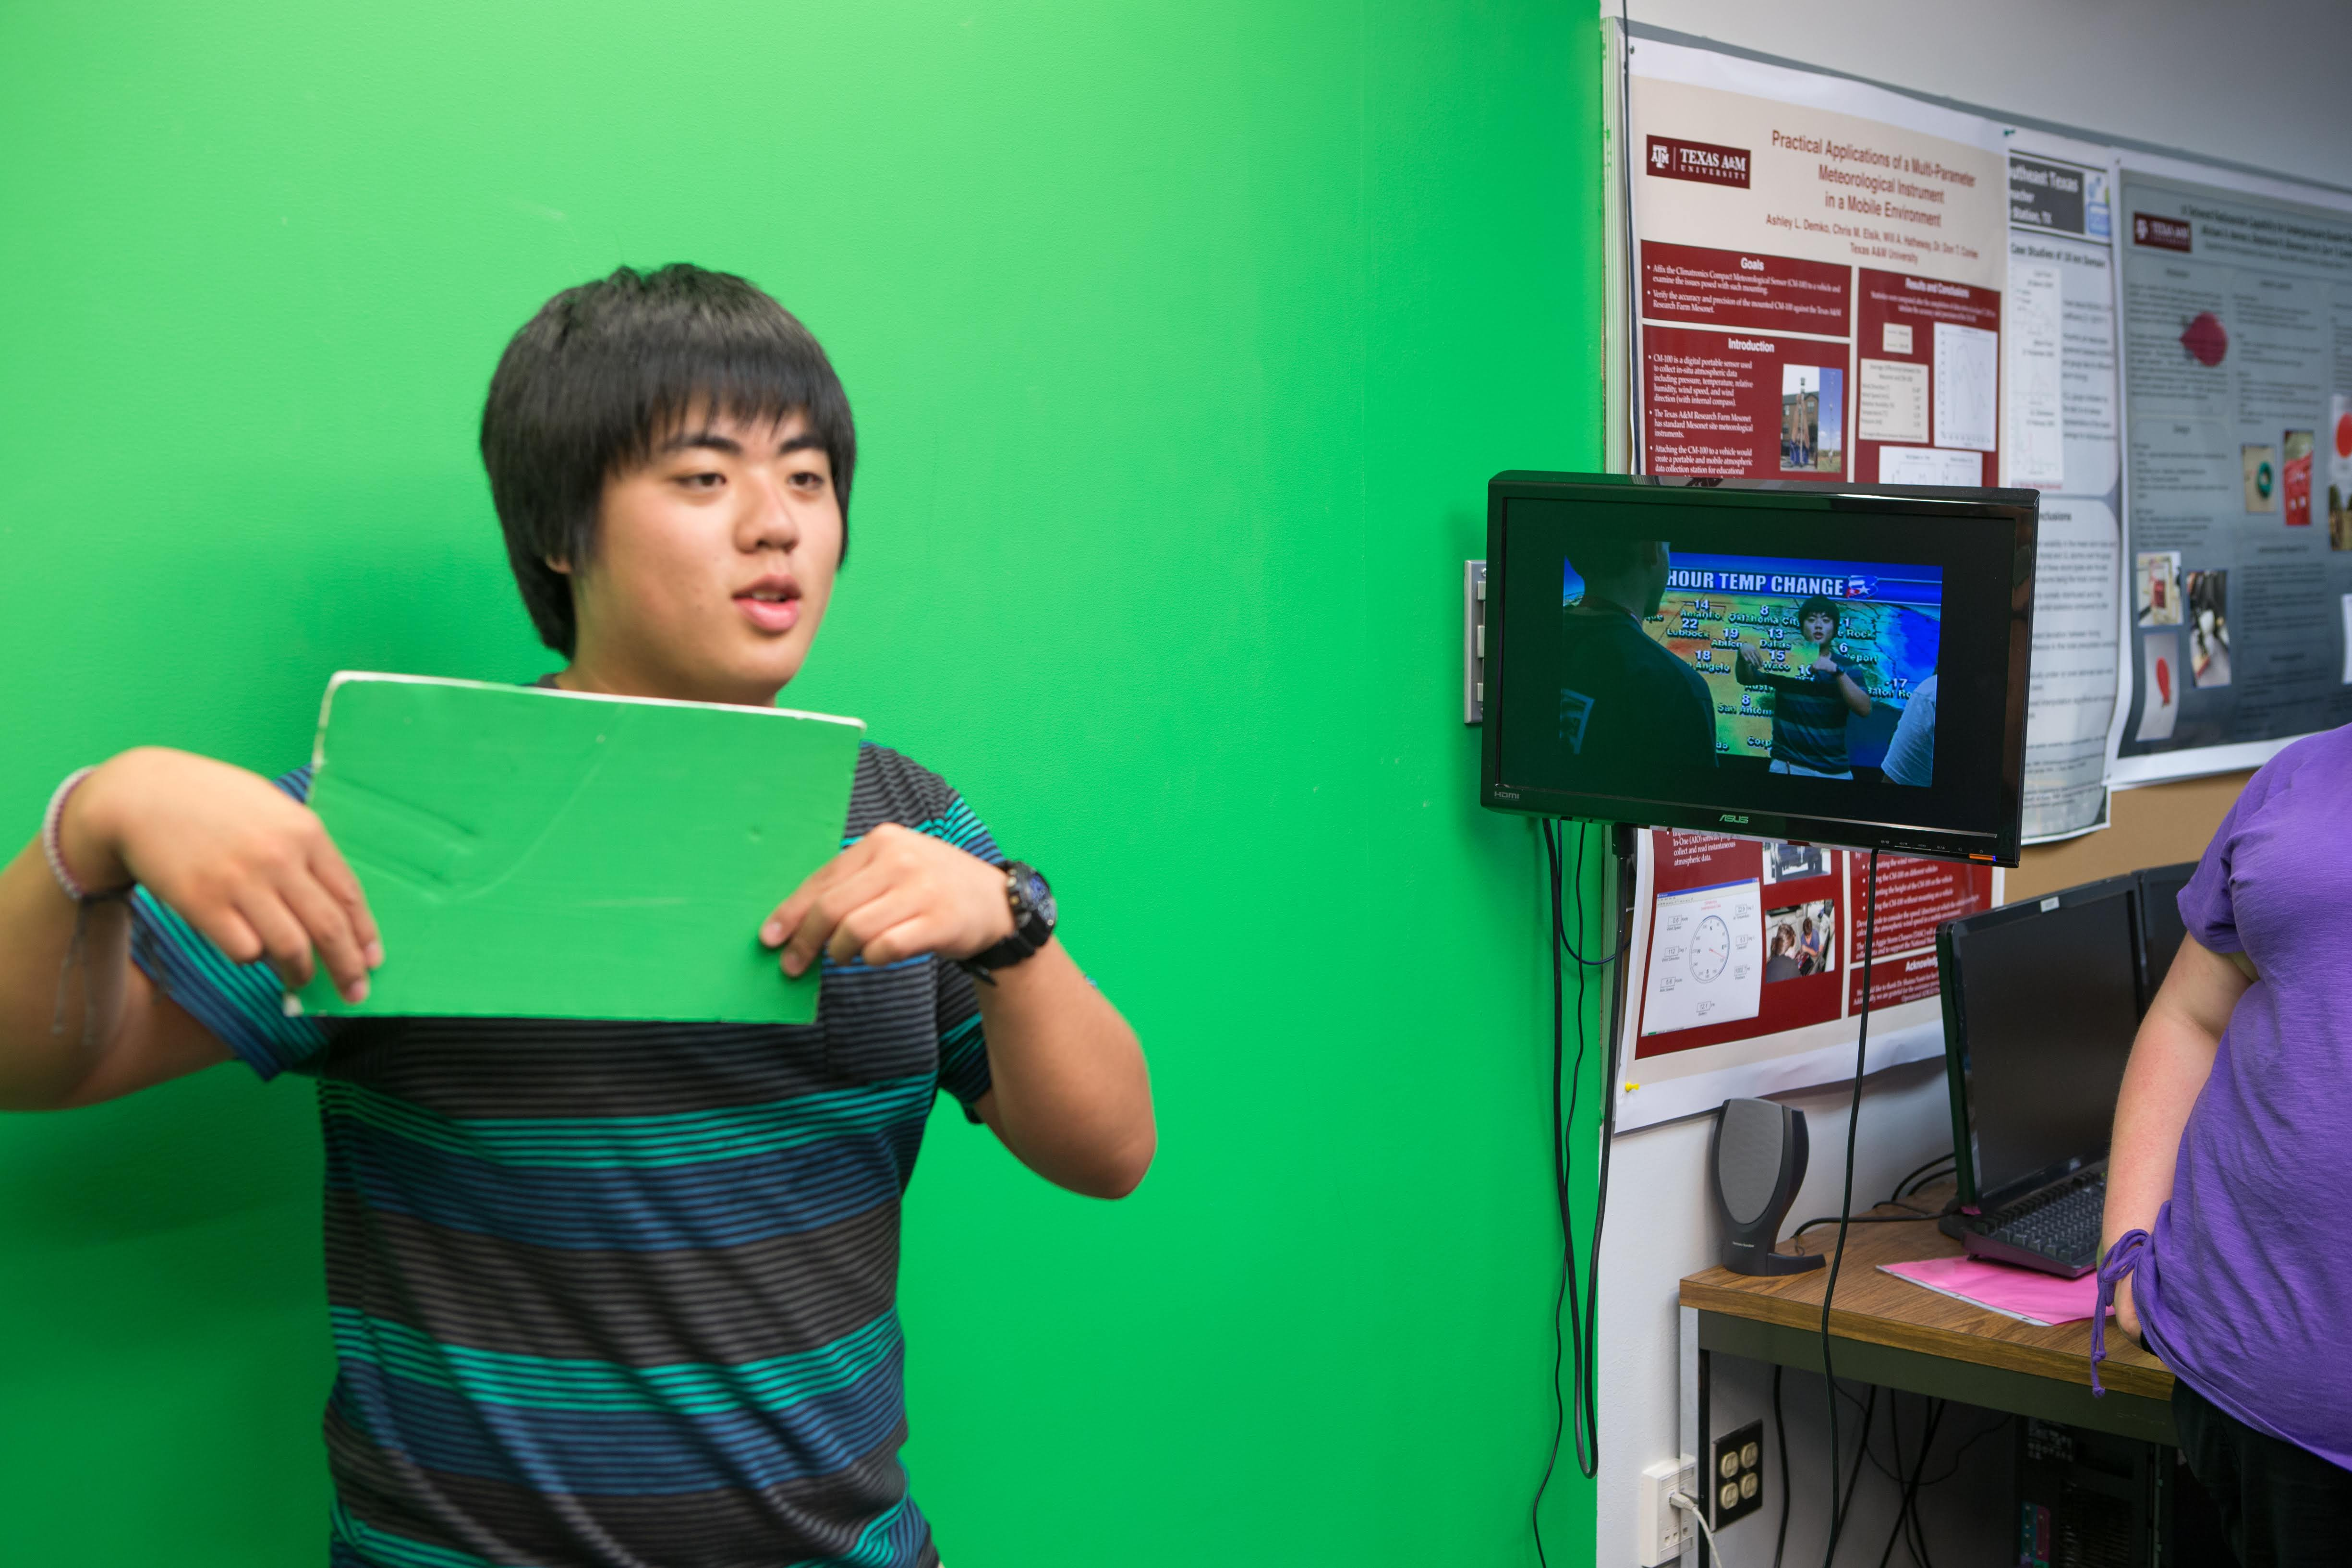 Student in front of green screen in the TV studio